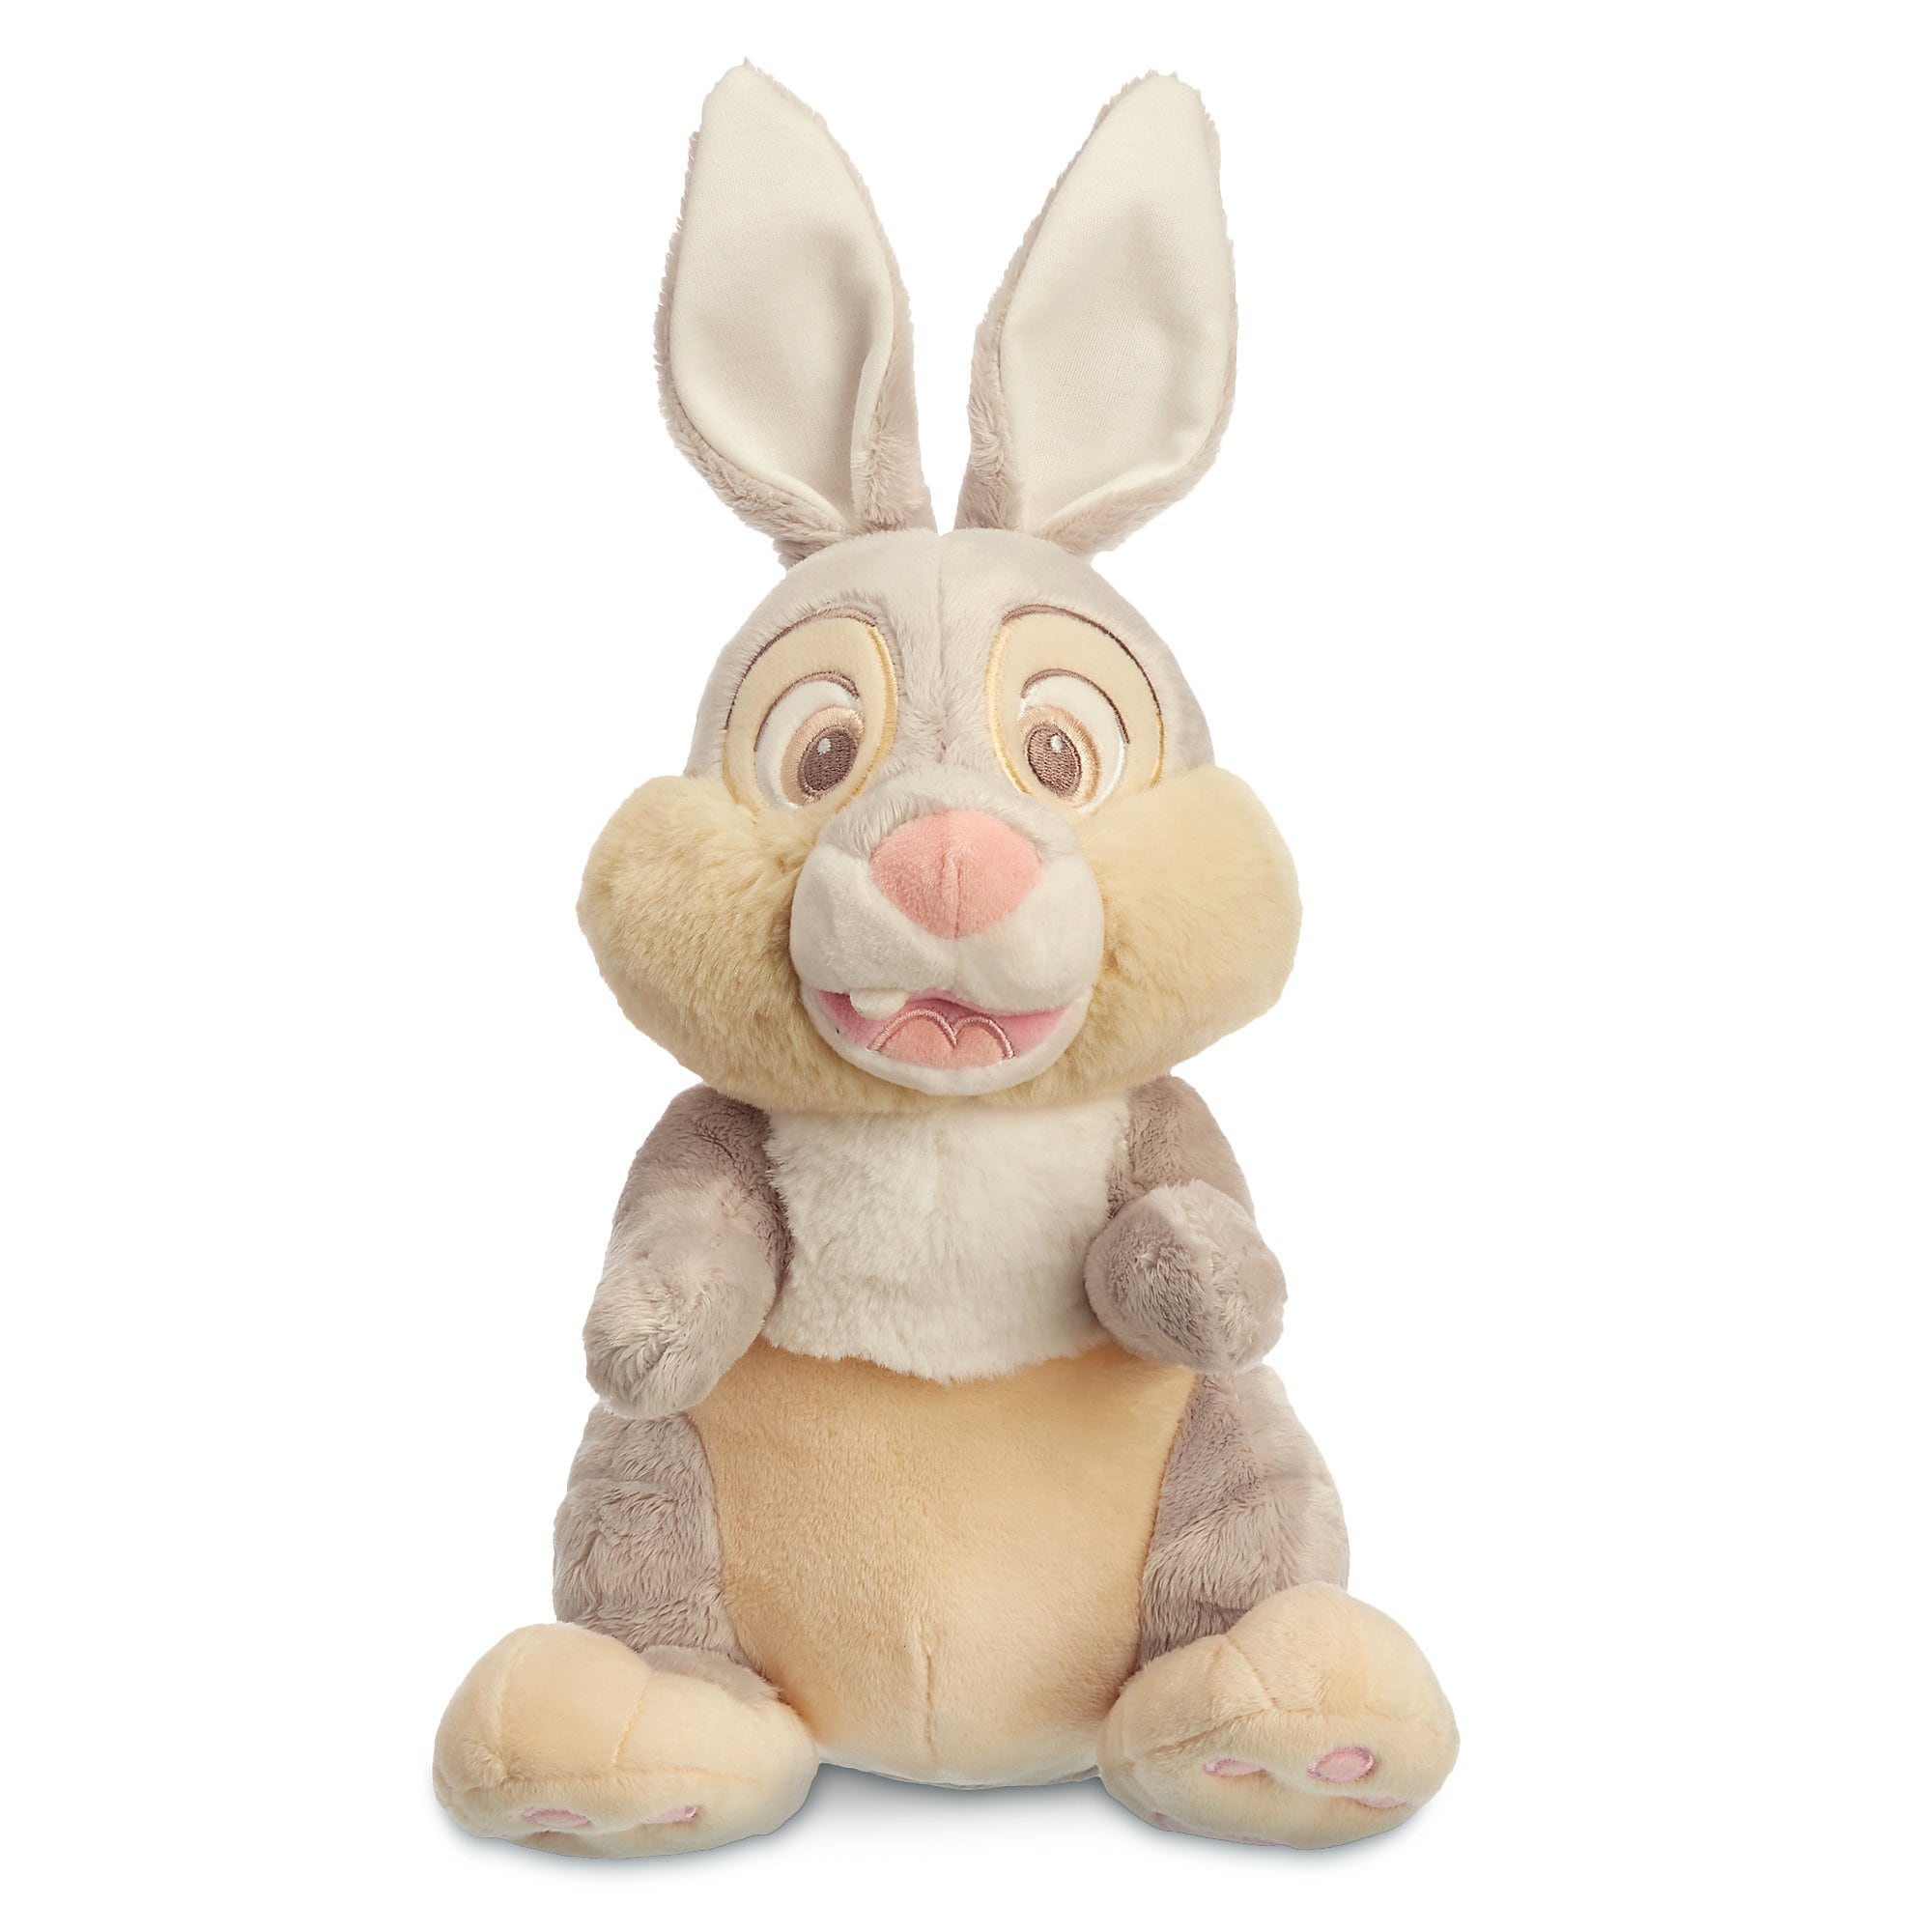 Thumper Plush for Baby - Bambi - Small